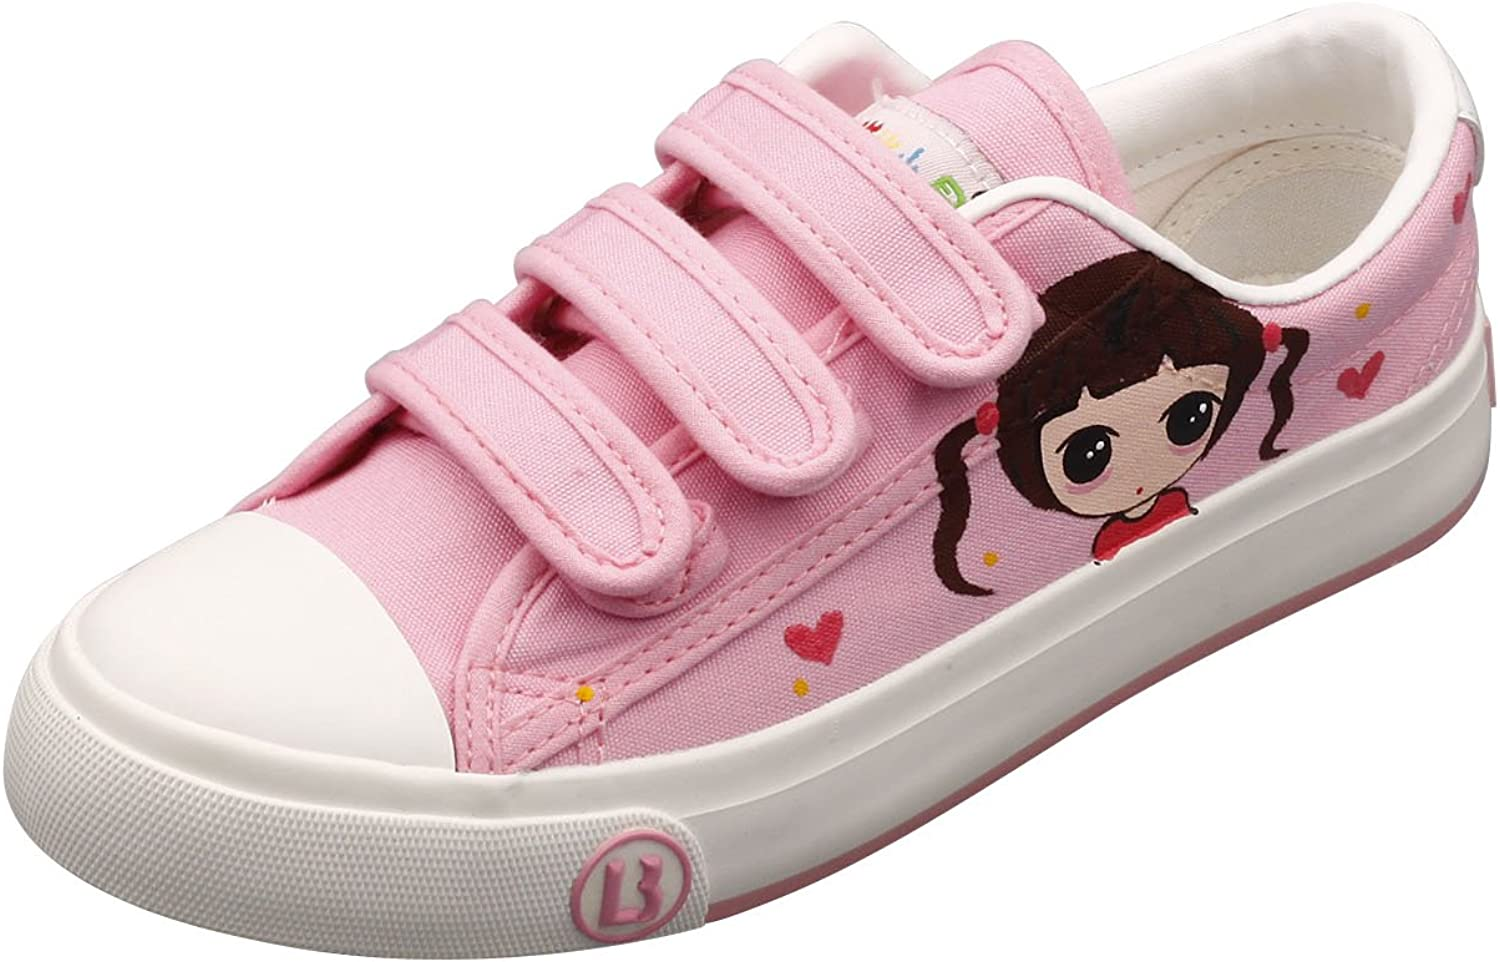 E-LOV Pink Cartoon Long Hair Big Eyes Girl Hand-Painted Canvas shoes Low Cut Sneakers Hook and Loop Strap Personalized Casual shoes for Women and Men